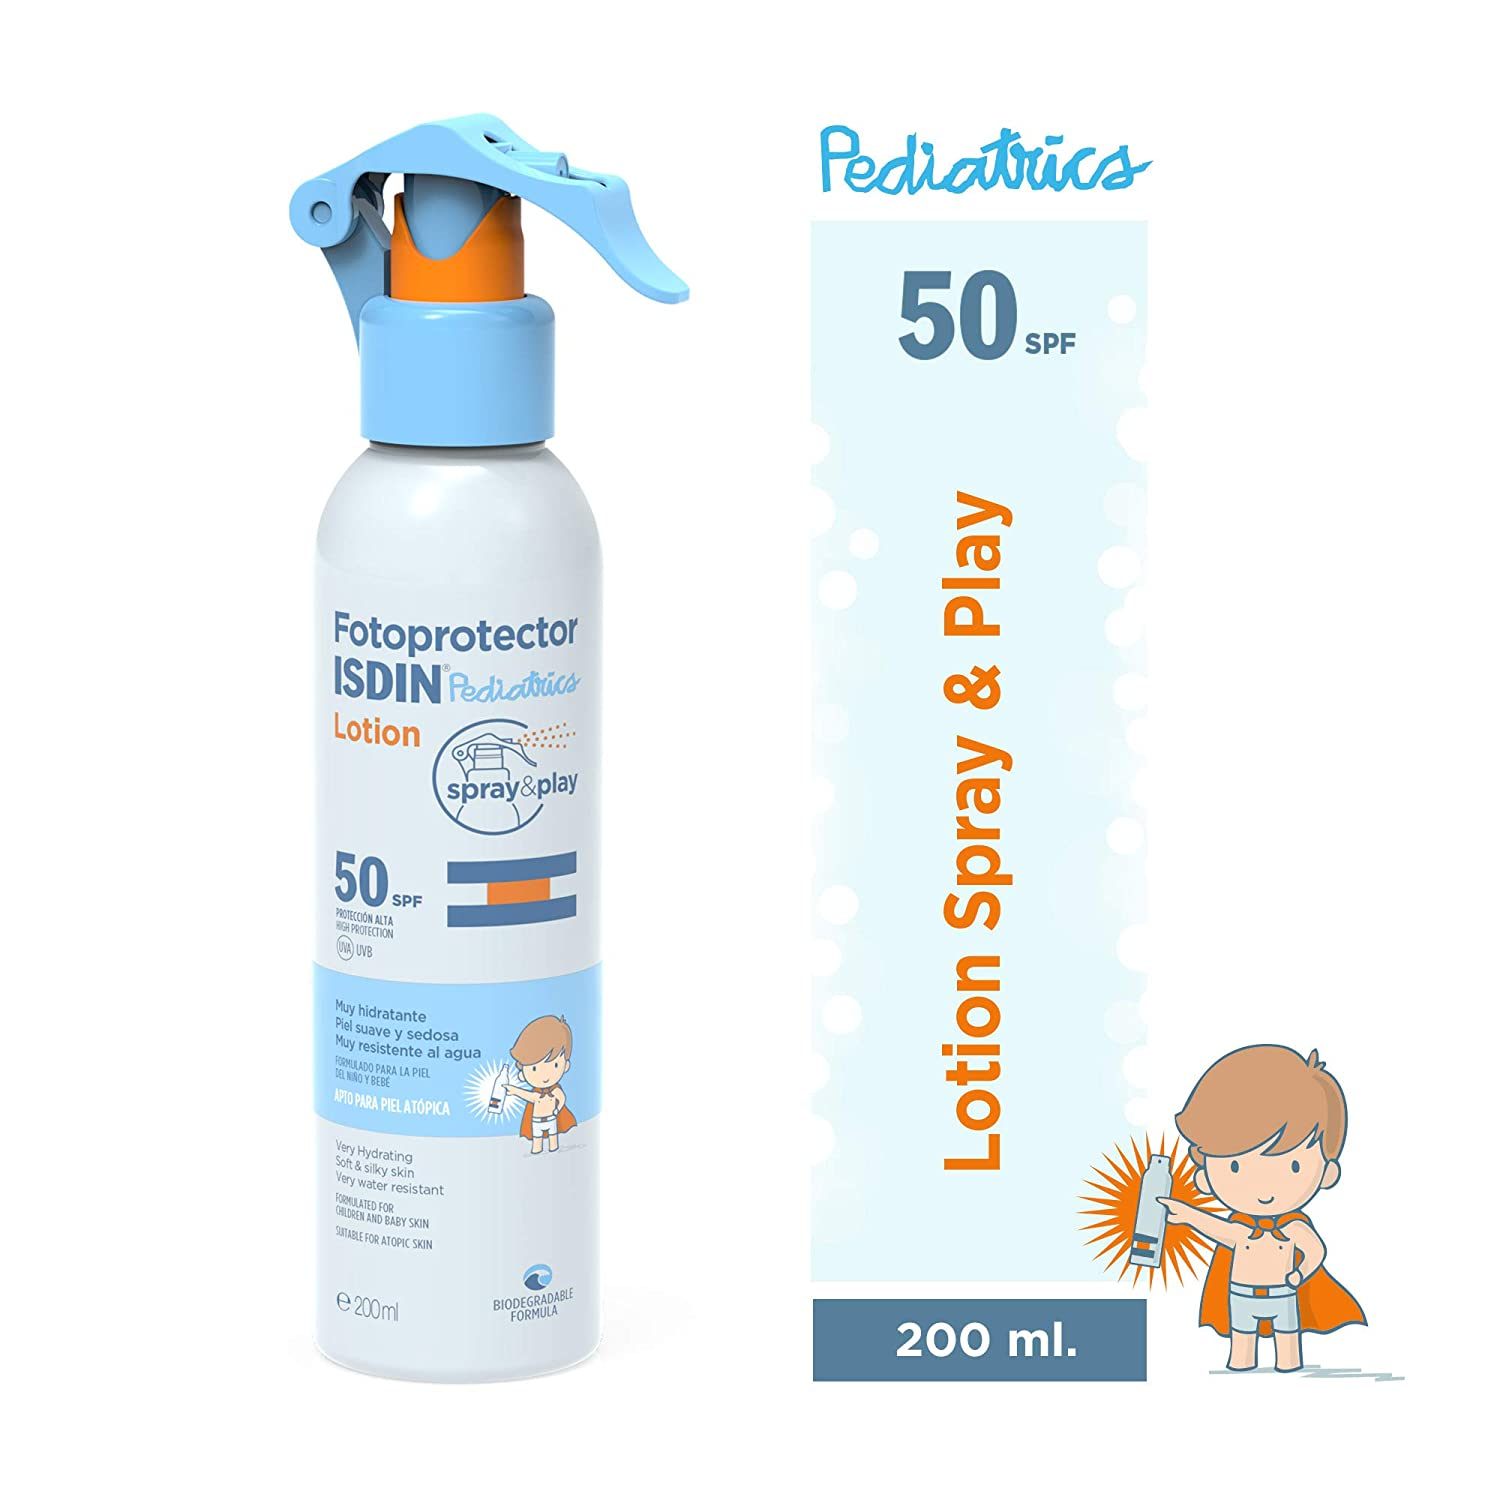 Fotoprotector ISDIN Pediatrics Lotion Spray & Play SPF 50 200 ml ...